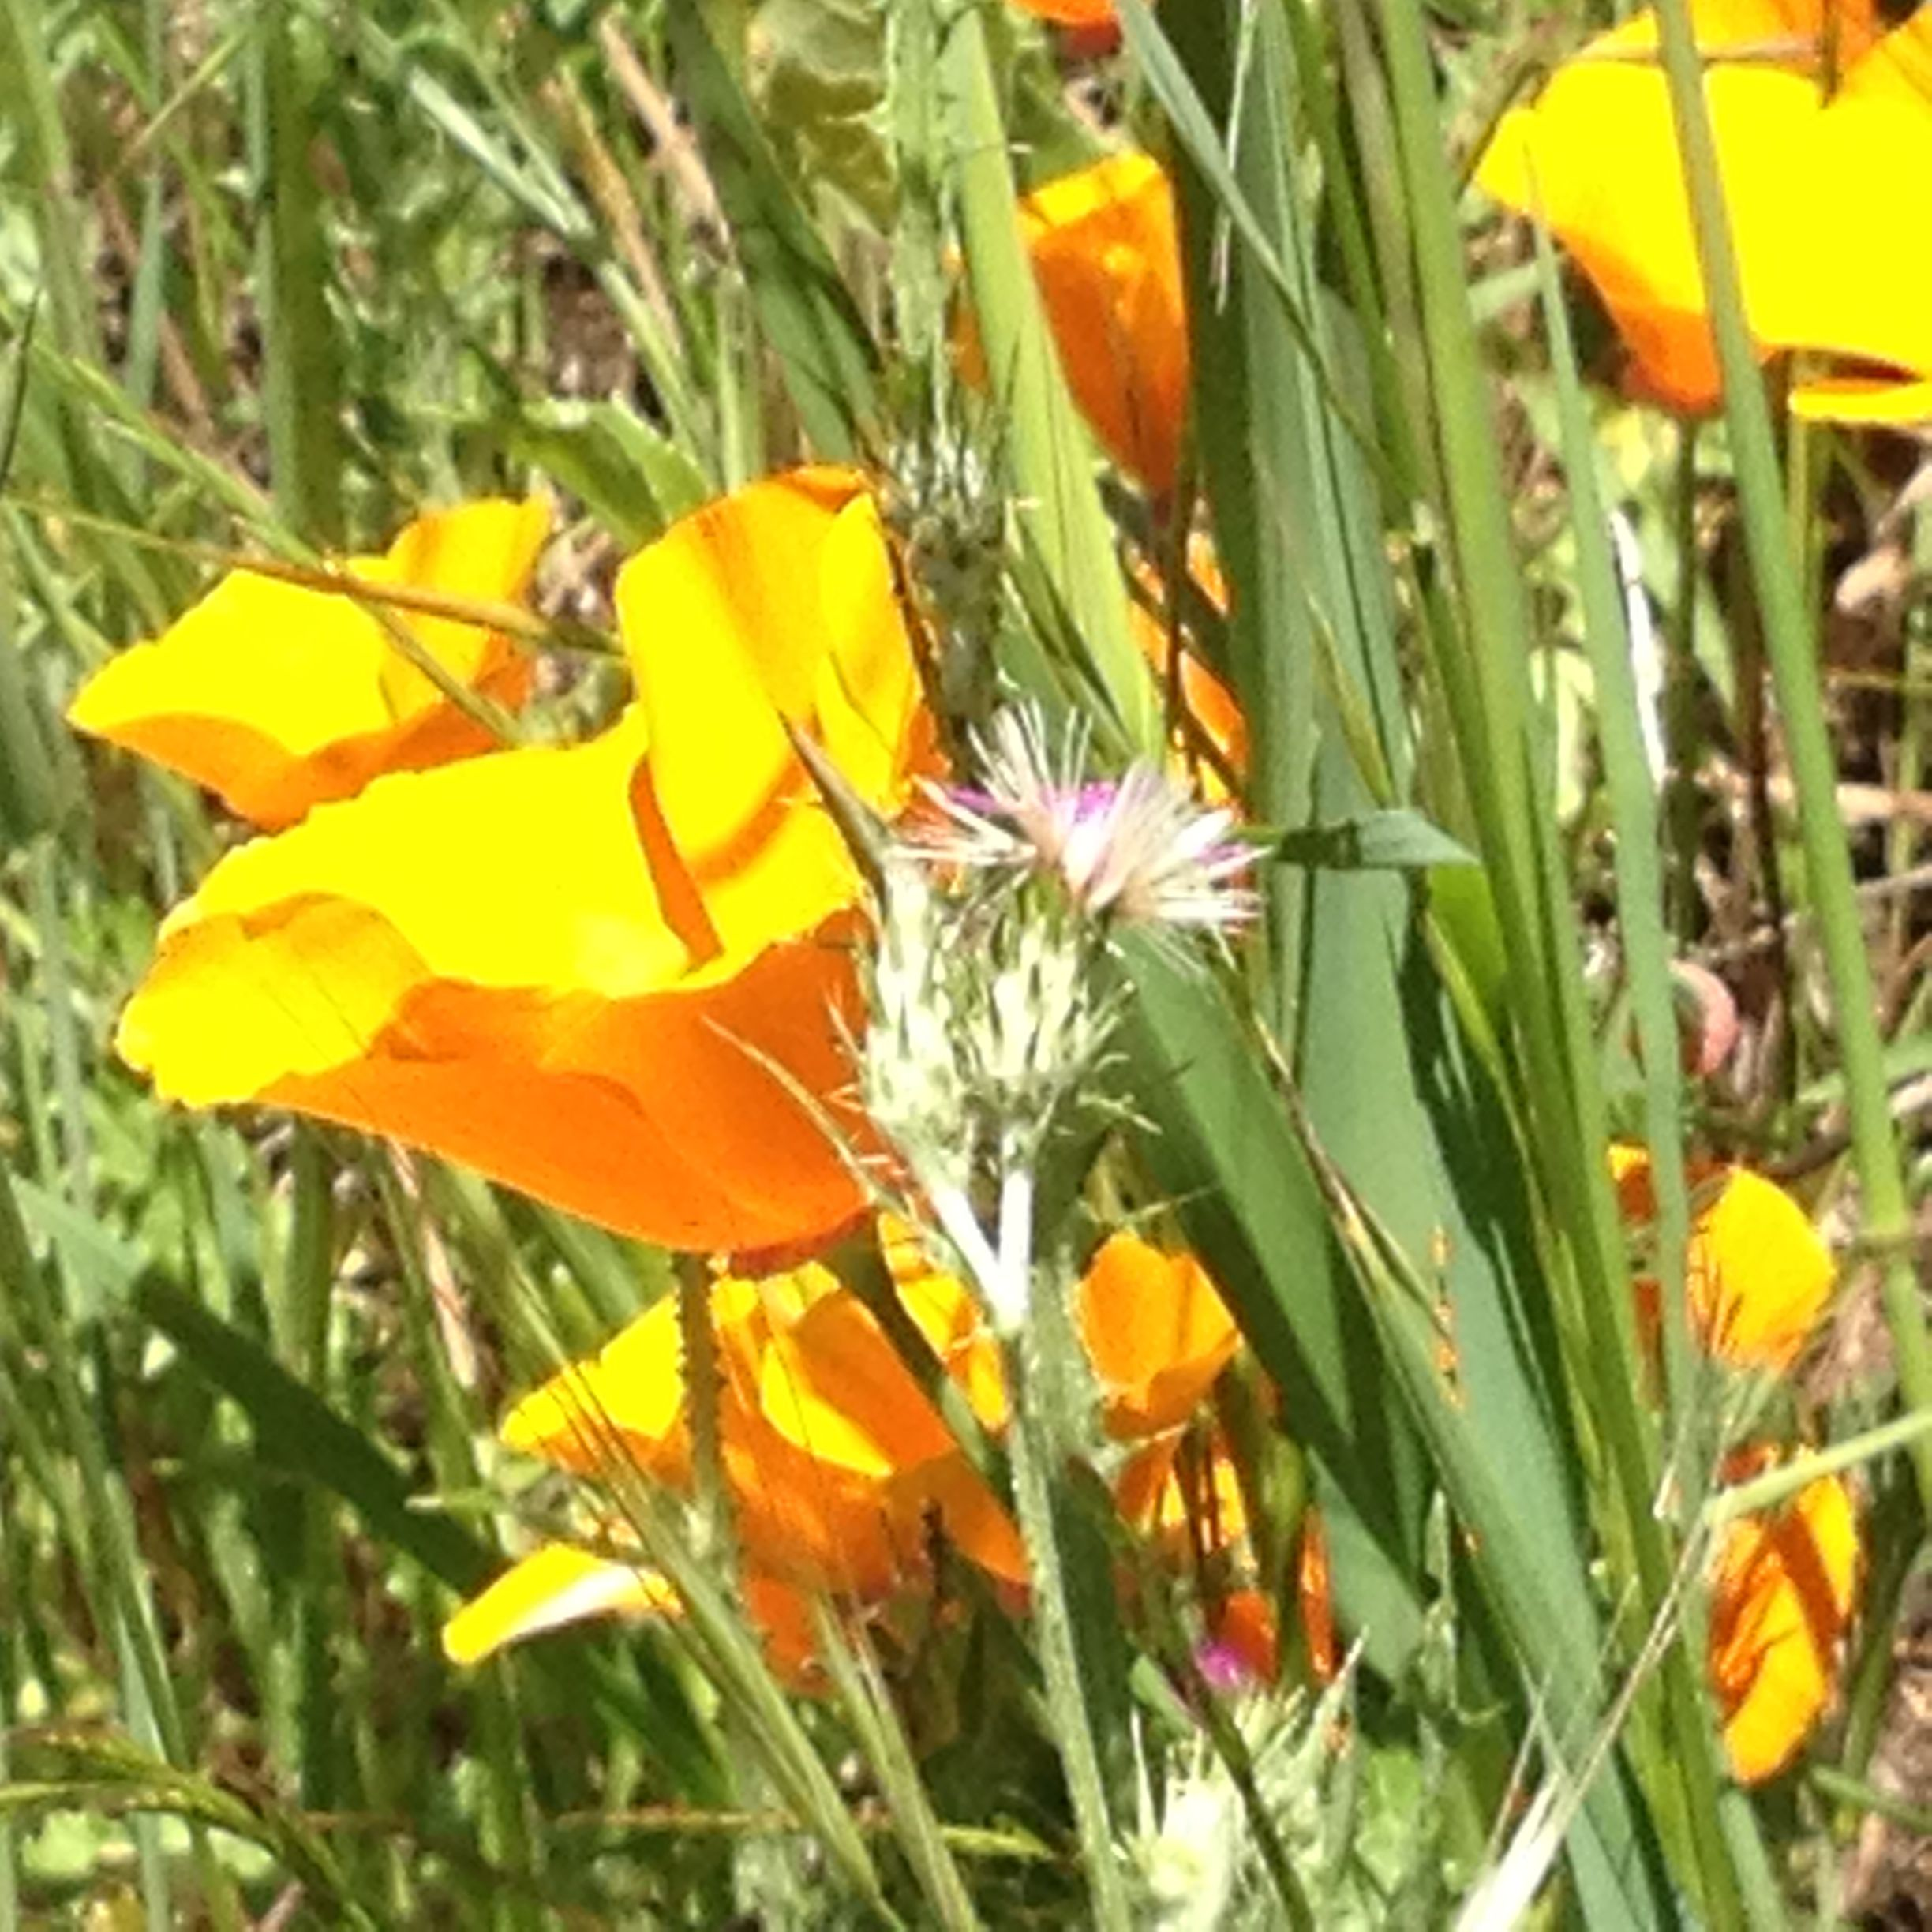 California Poppies, the state flower, usually bloom after the rains...somehow, they've bloomed this year after enough fog. They are the quintessential California sunshine color...evoking the brightness of the sun and the colors of california that have been expressed in landscapes for decades.